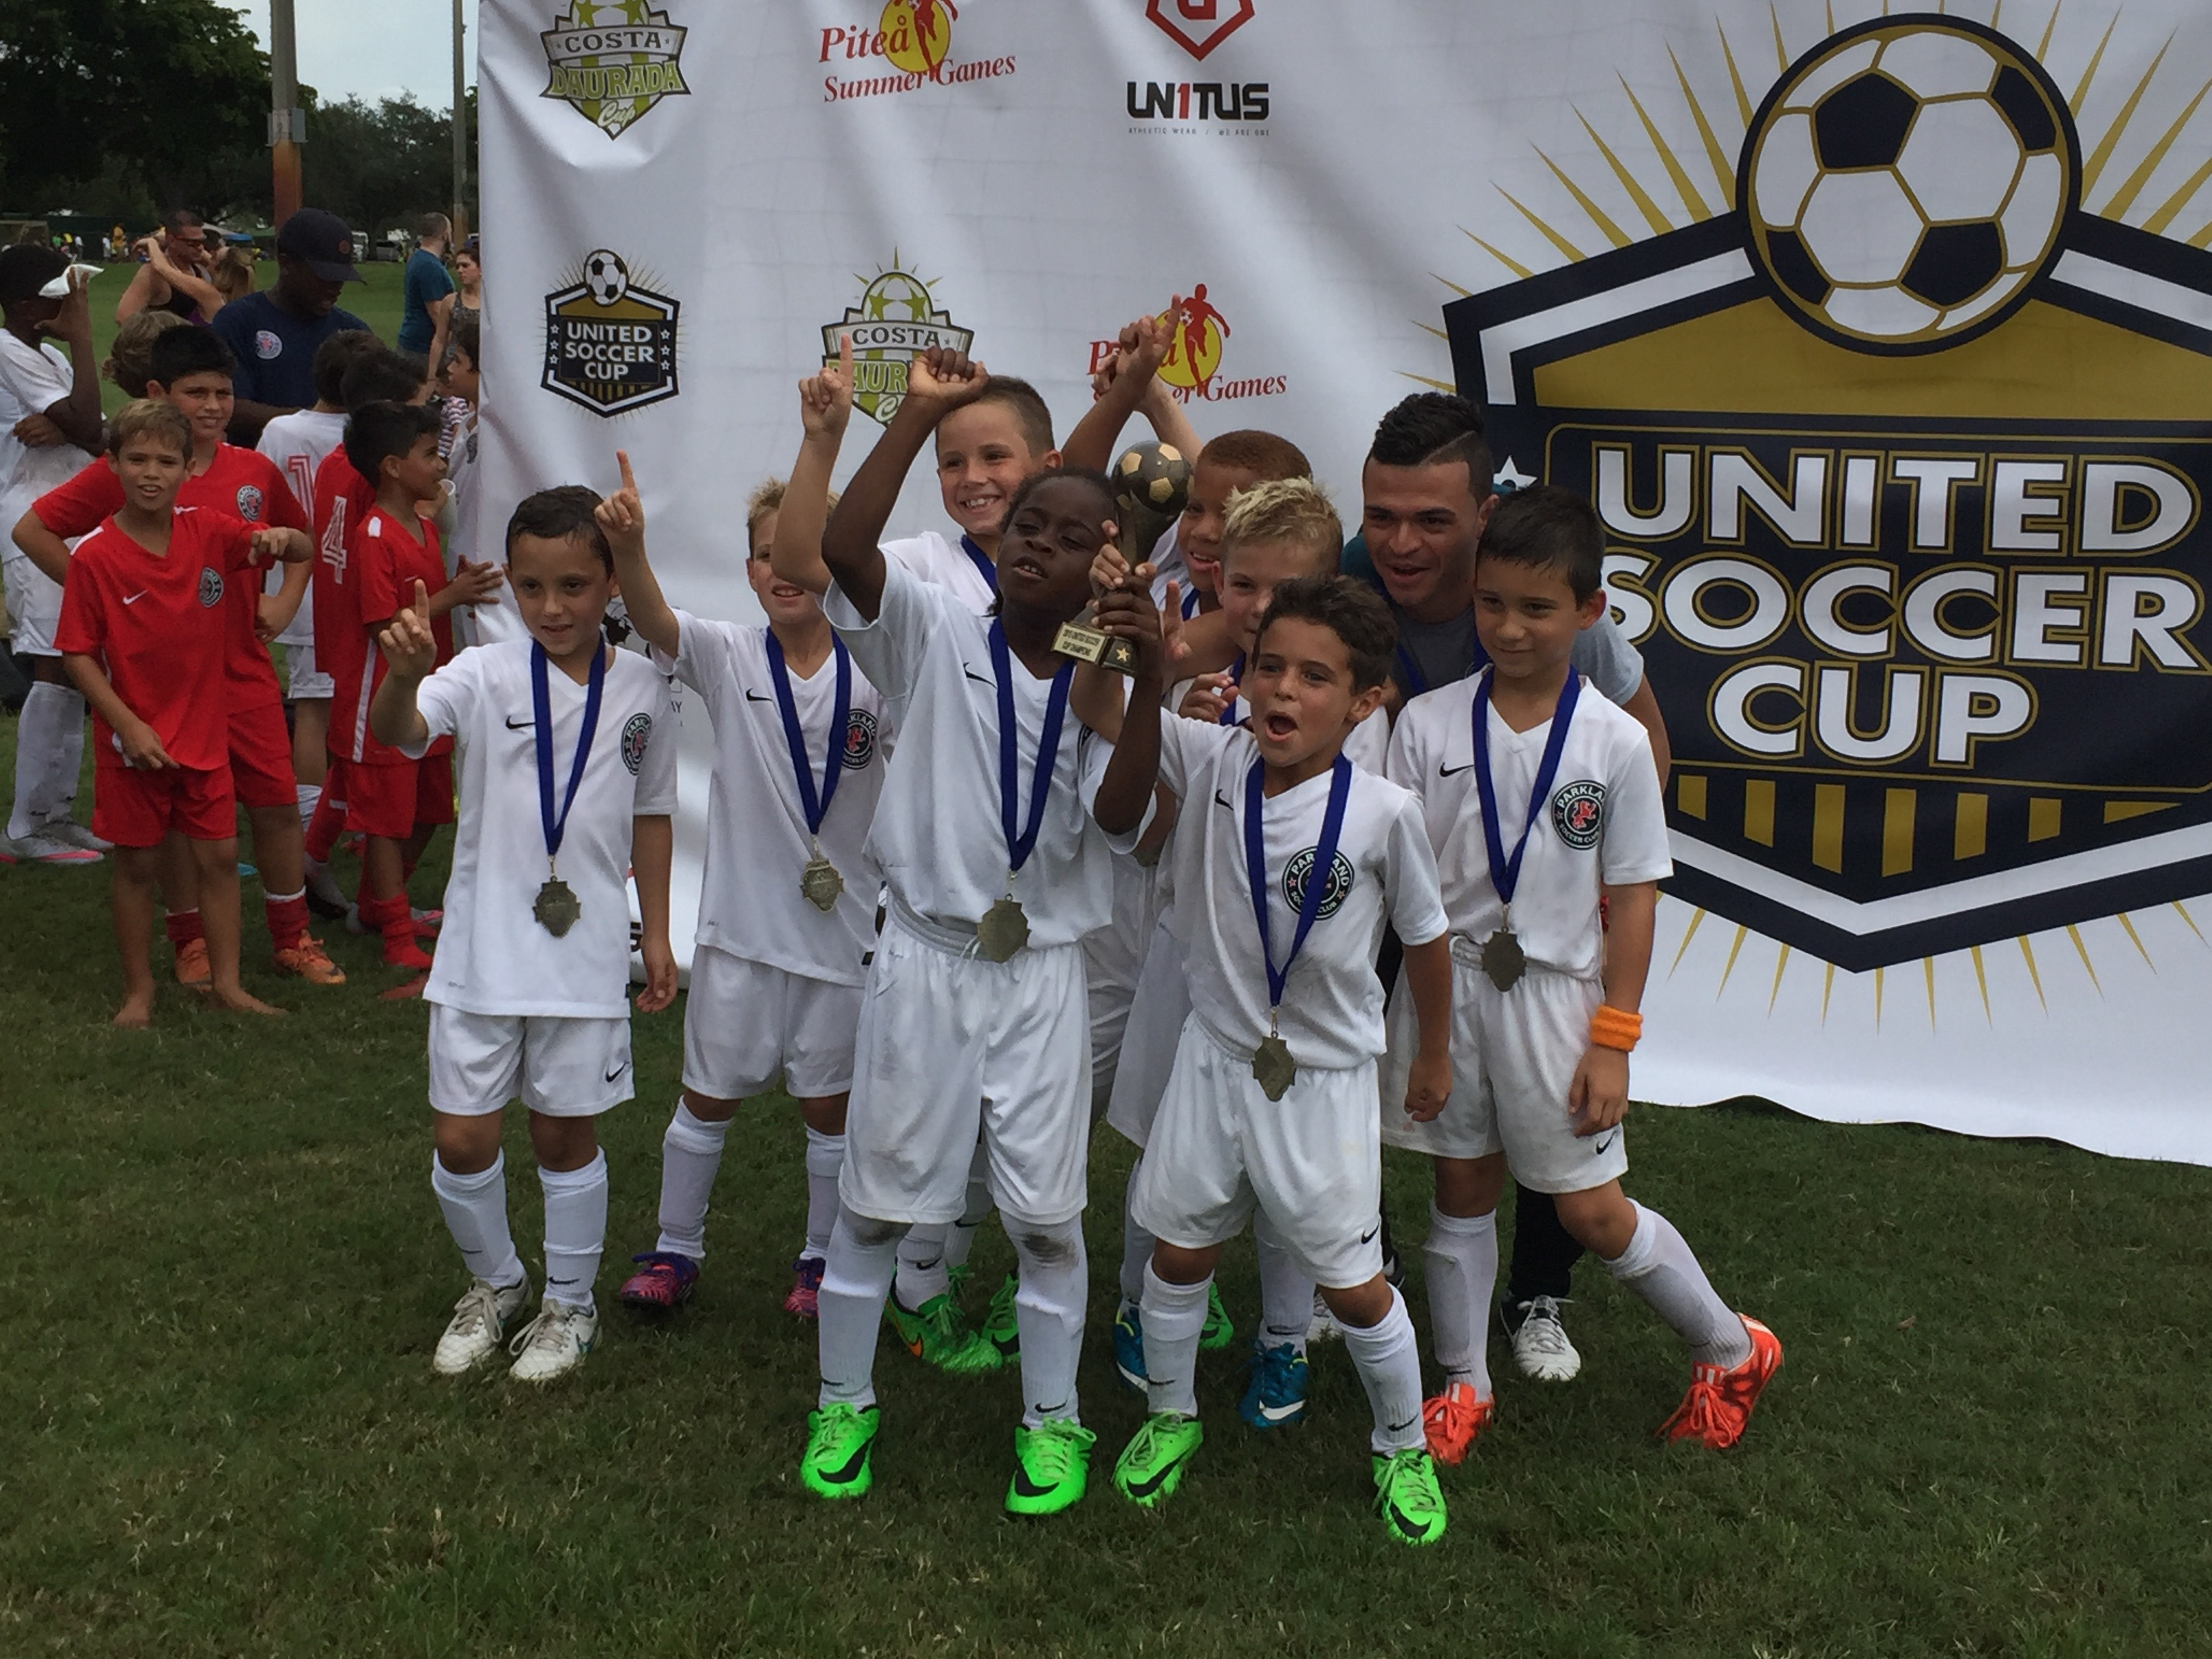 U8 Boys Red - United Soccer Cup Champions